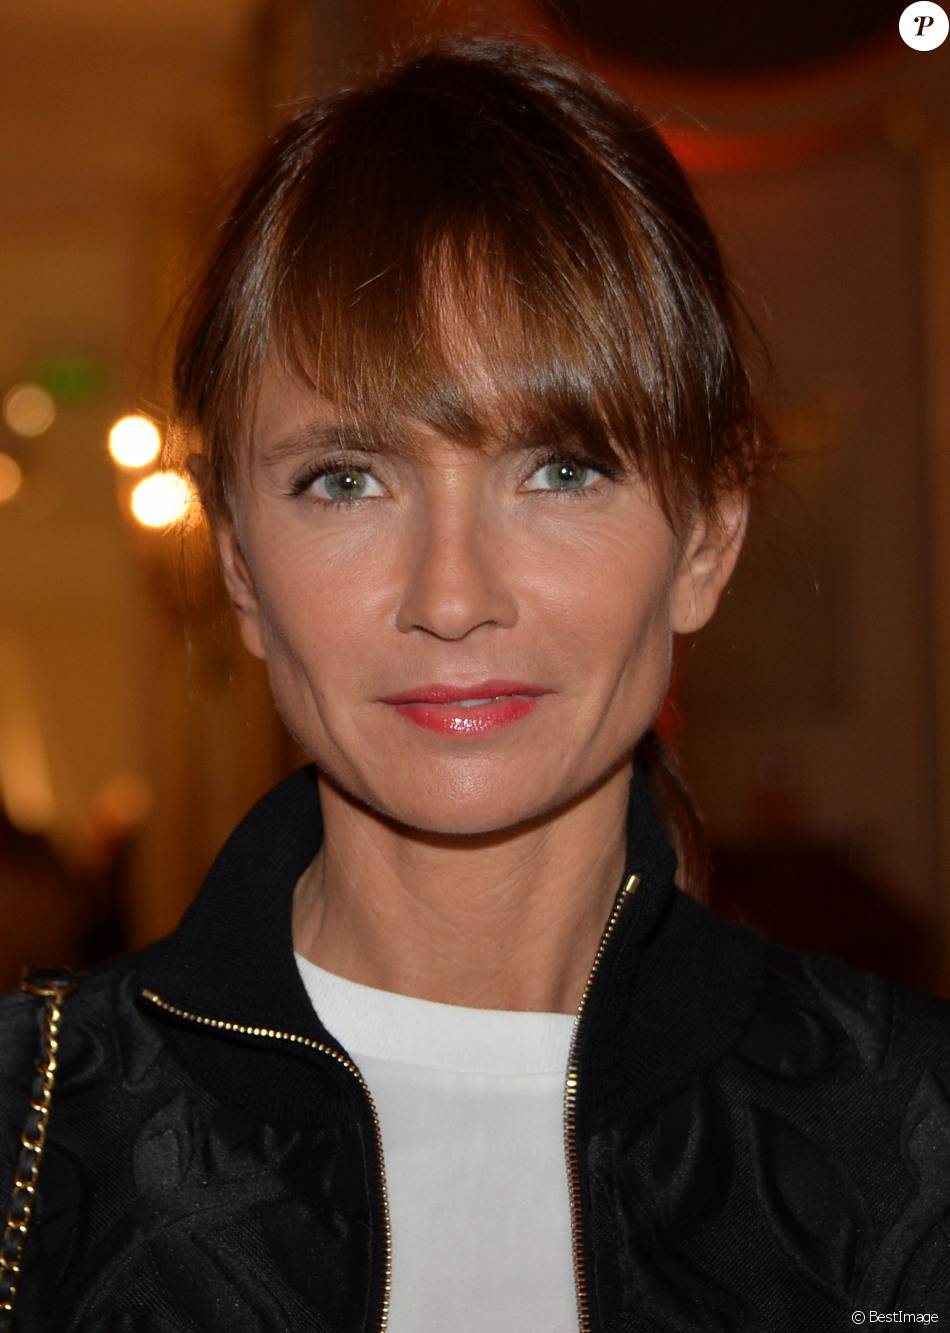 Axelle Laffont picture 16